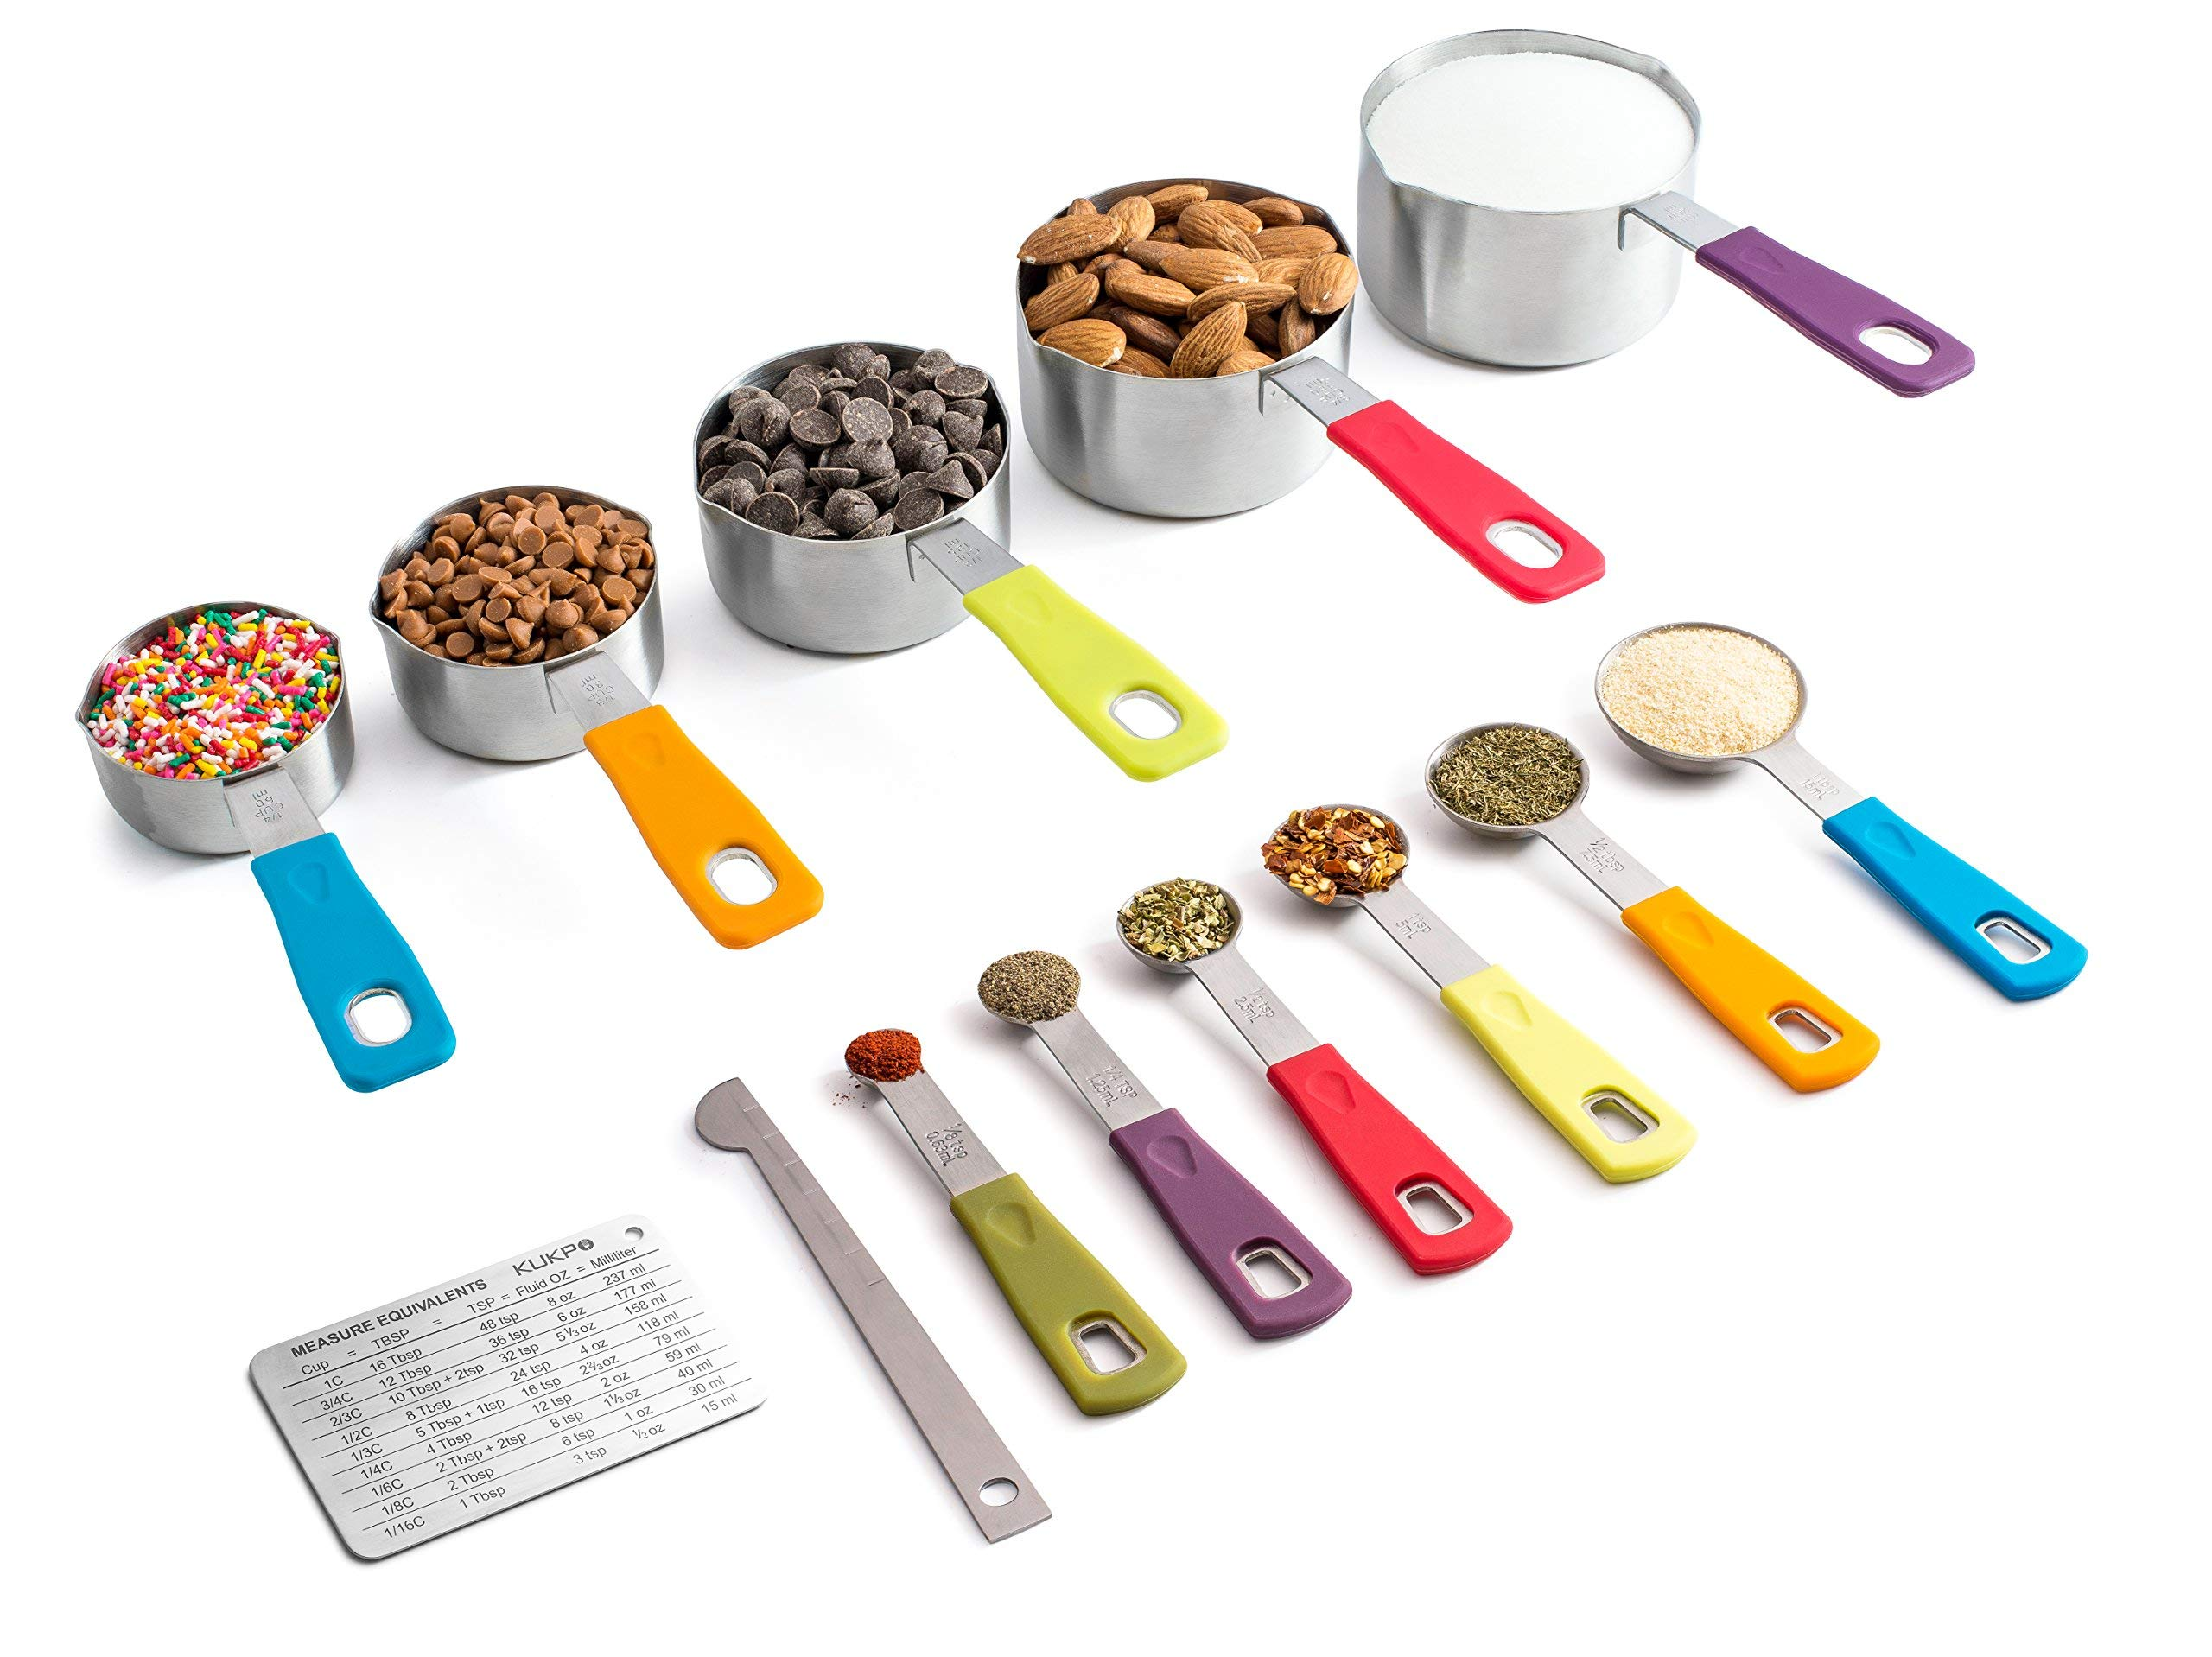 KUKPO Measuring Cups and Spoons Set- Superior Quality 13- Piece Measuring Set For Baking w/ Non-Slip Colorful Silicone Handles & Easy To Pour Spouts- Perfect For Liquid & Dry Ingredients- Great Gift by KUKPO